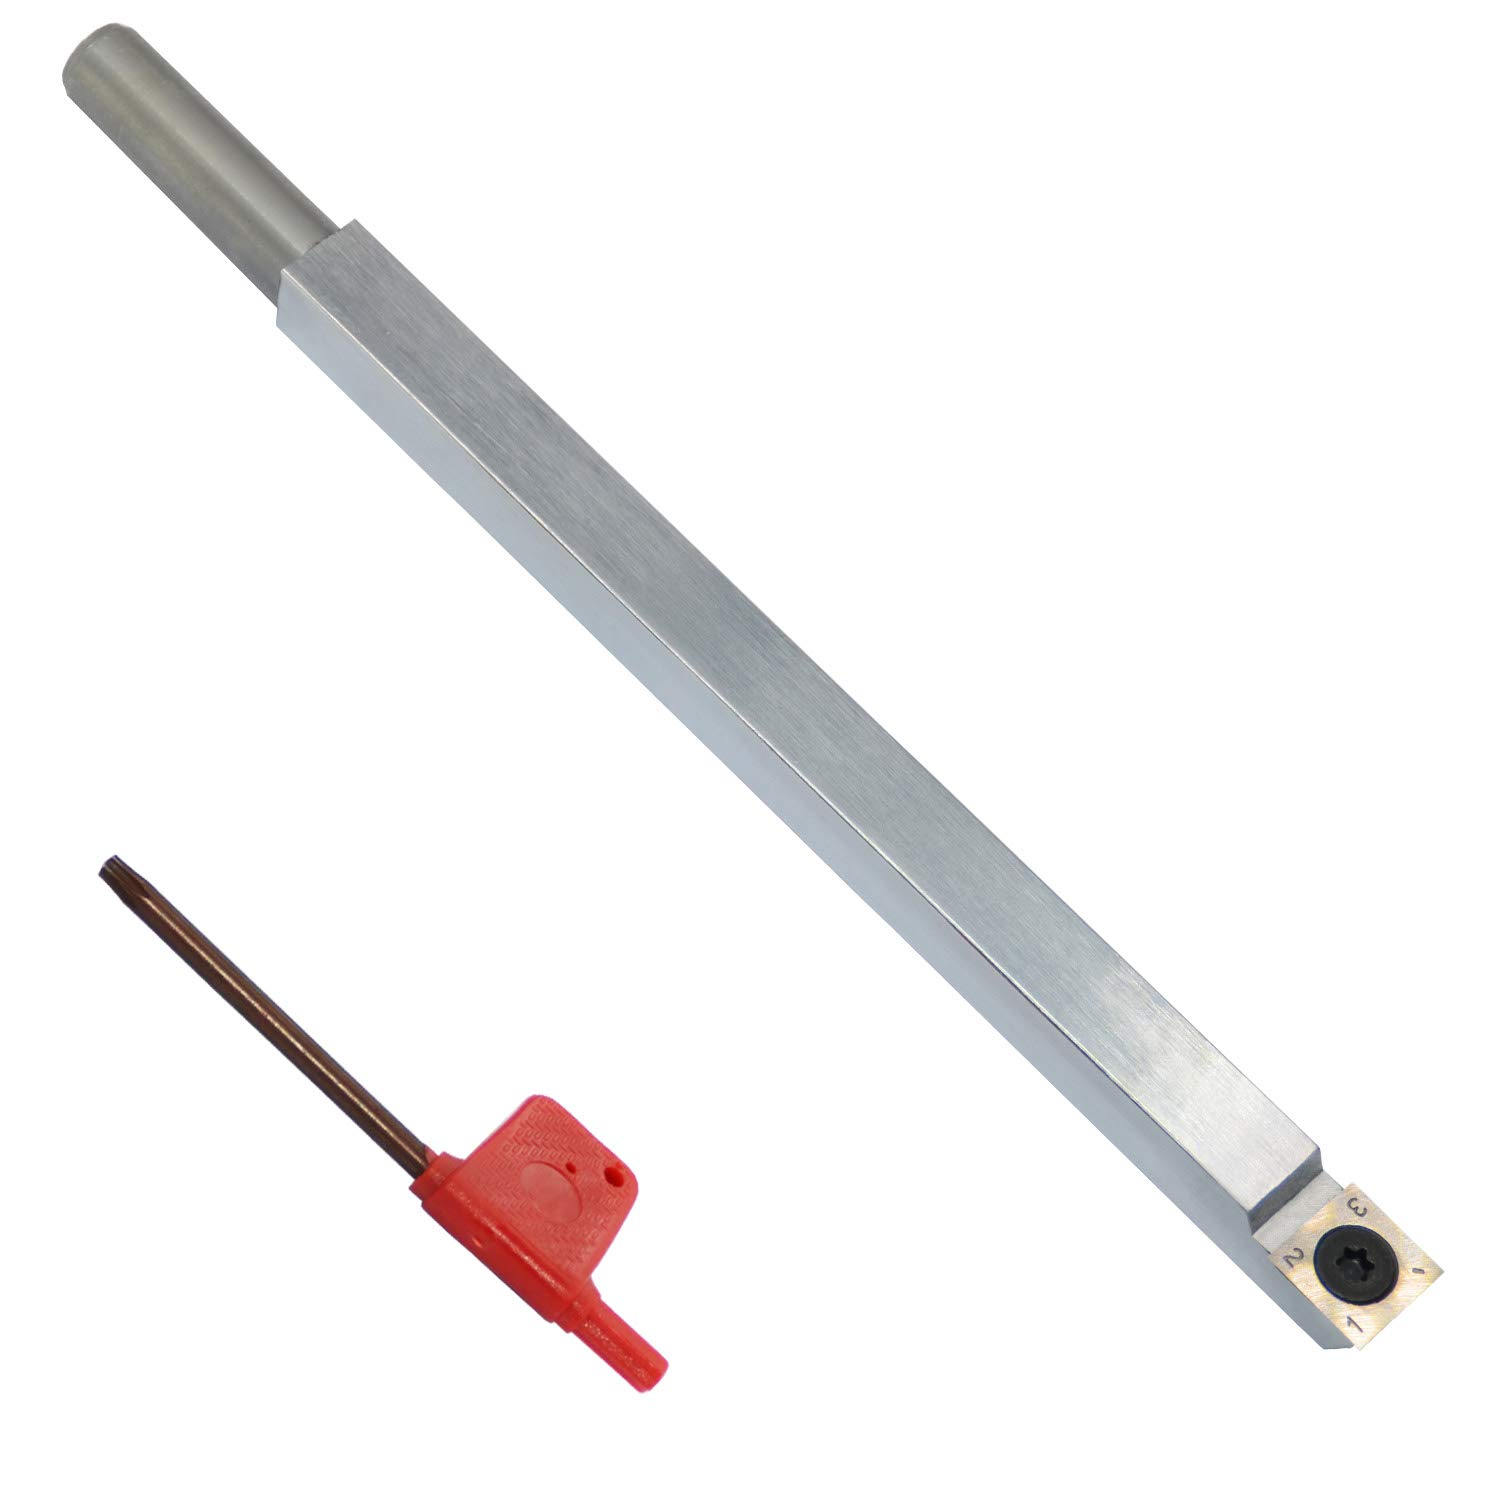 Wood Turning Tool Carbide Tipped Lathe Chisel Rougher Tool Bar 8.68 Inches With 14mm Square Carbide Insert for Wood Hobbyist or DIY or Carpenter,Handle not Include